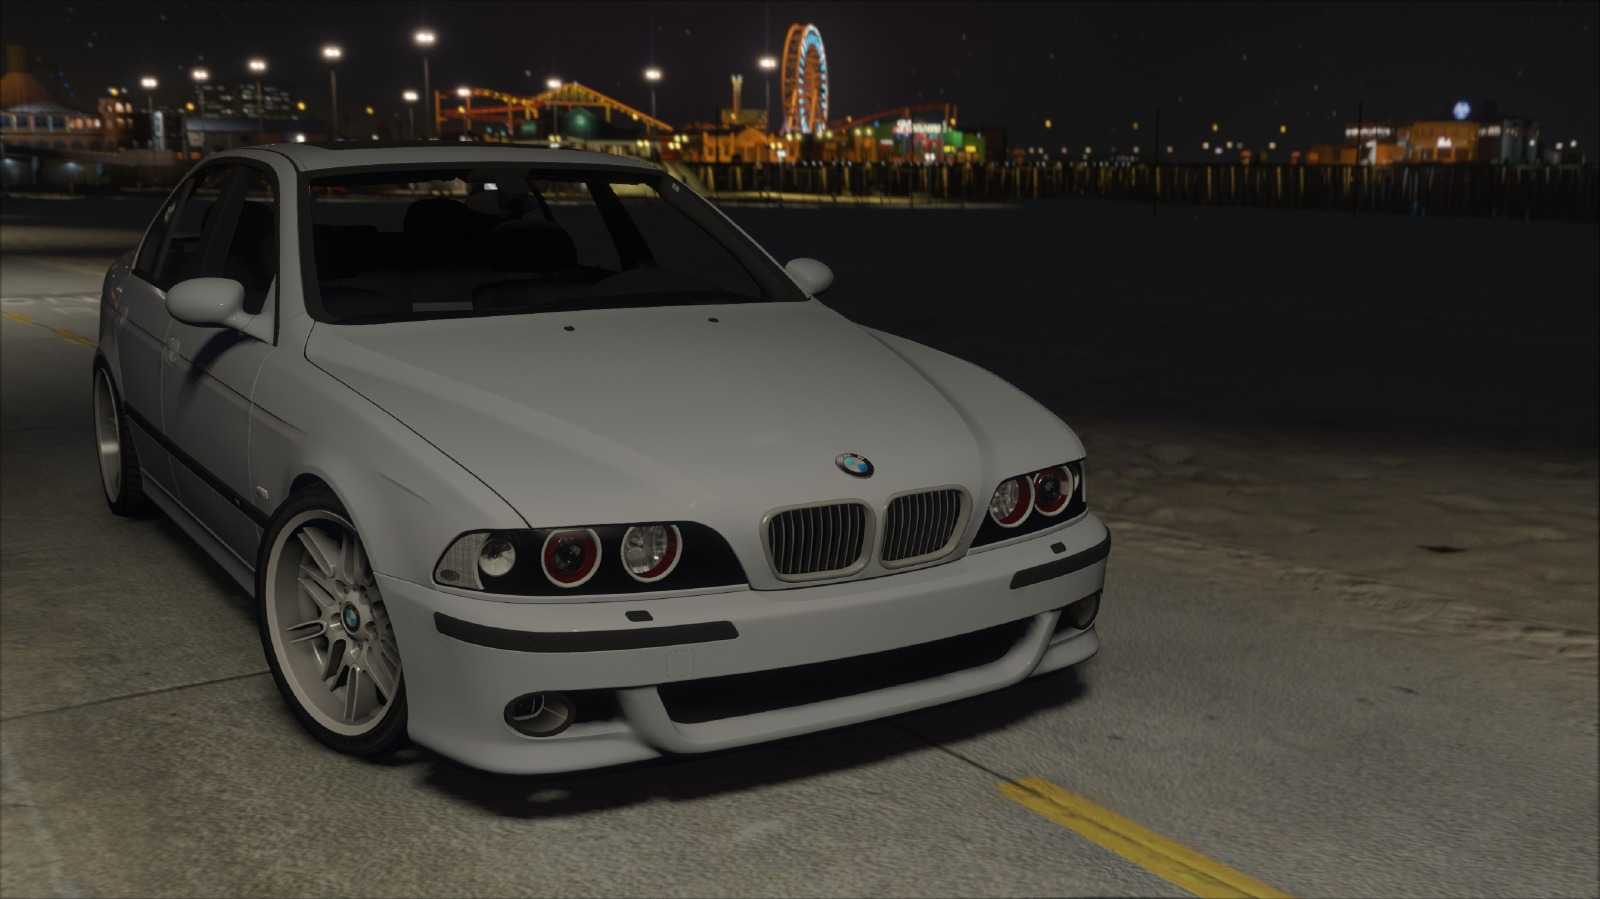 bmw m5 e39 vehicules pour gta v sur gta modding. Black Bedroom Furniture Sets. Home Design Ideas